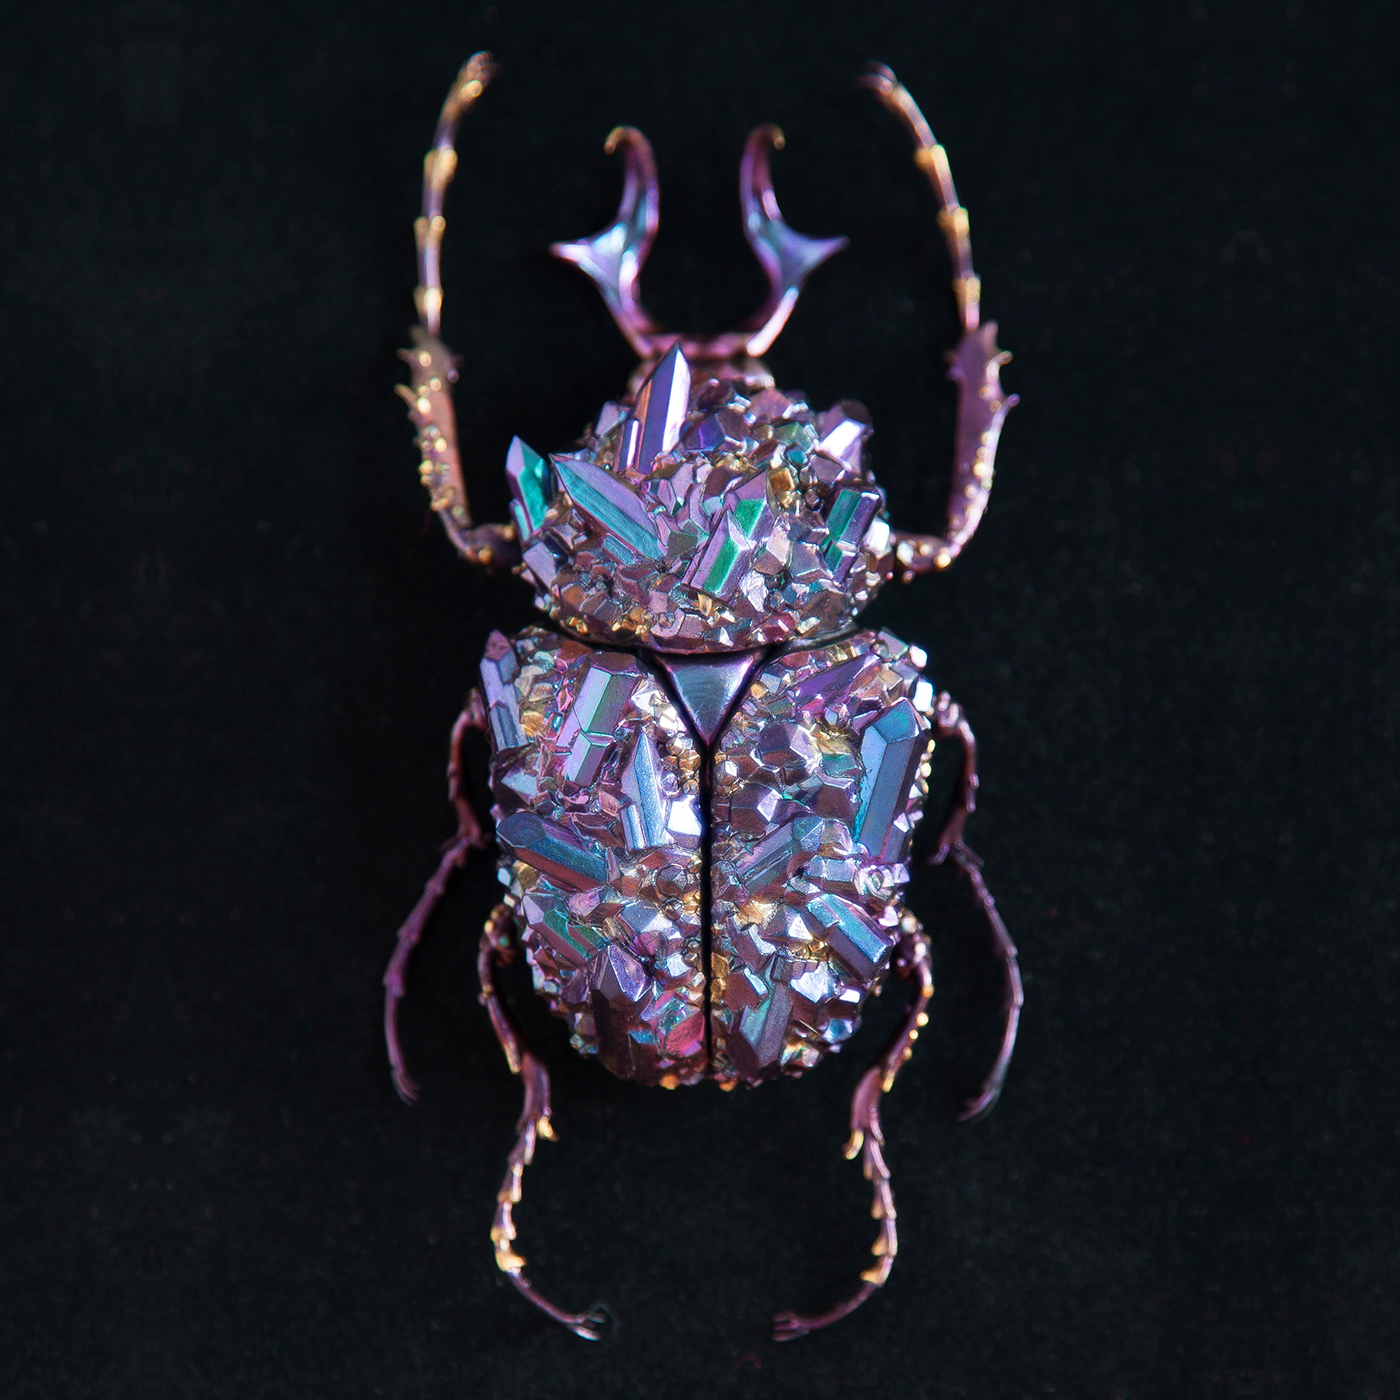 The Mineral insect